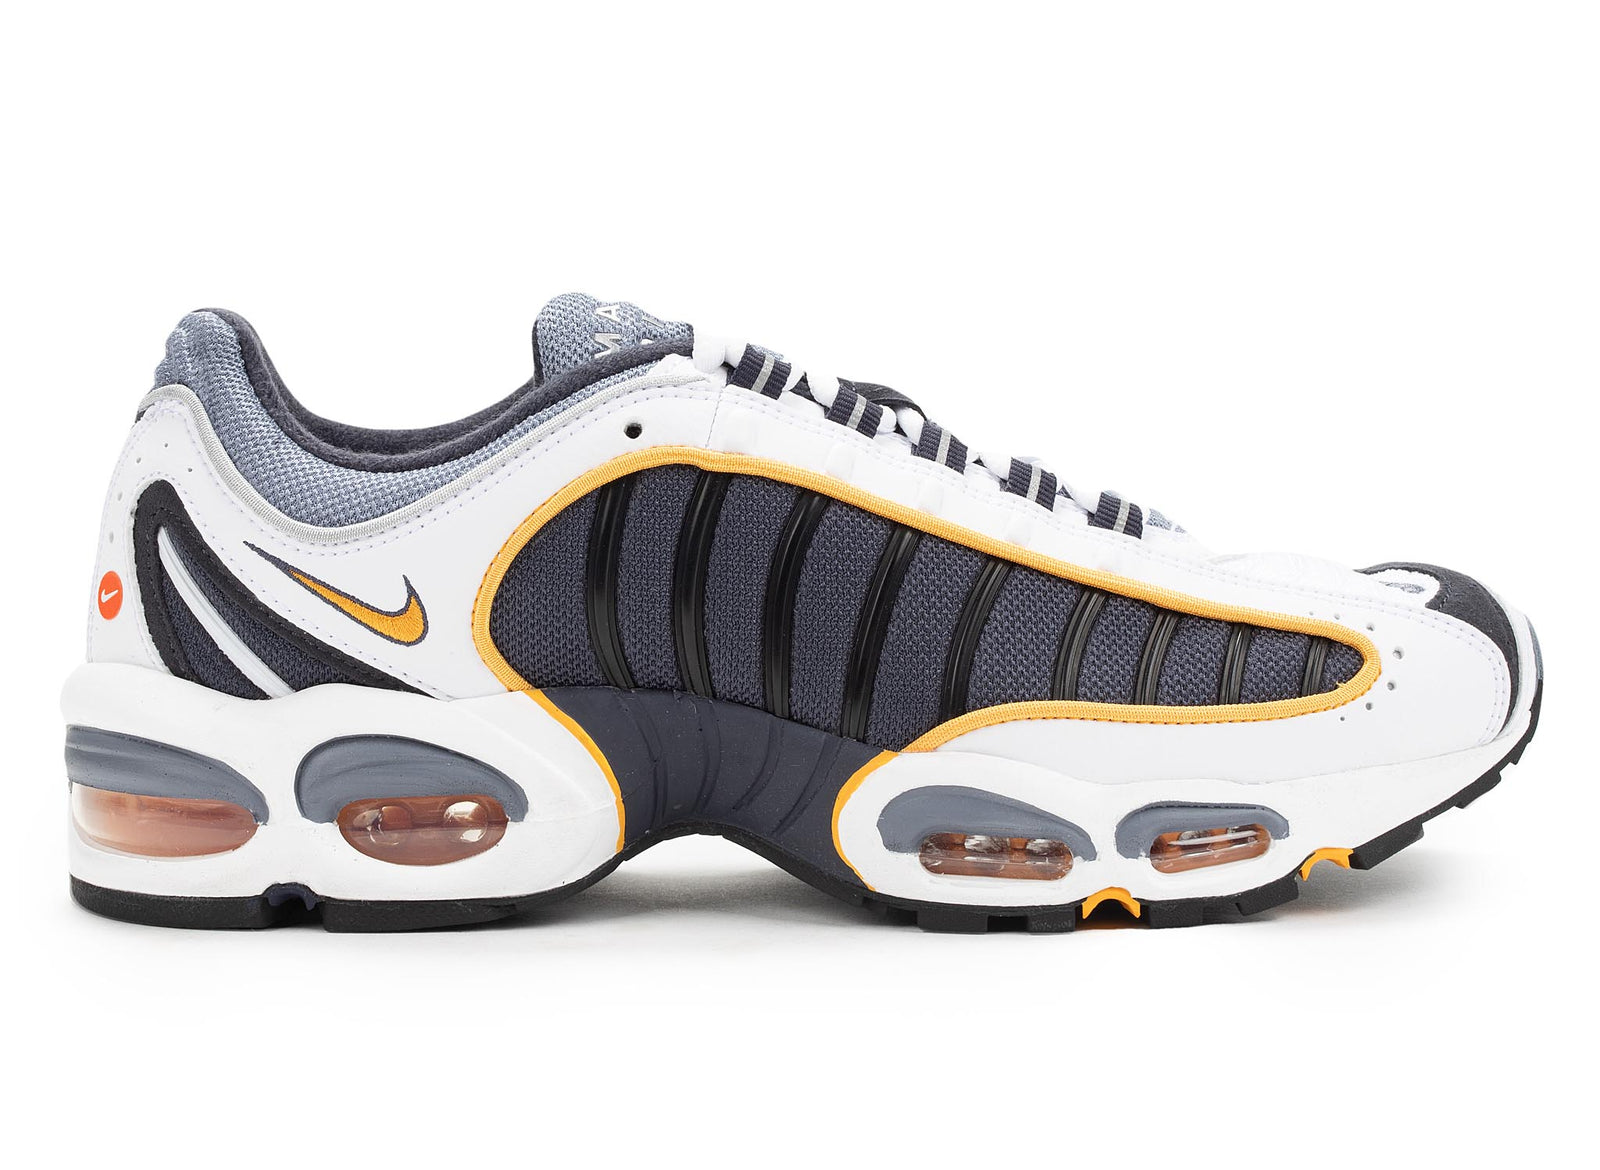 official photos 53d3c 043a9 Nike Air Max Tailwind IV  Machine Grey